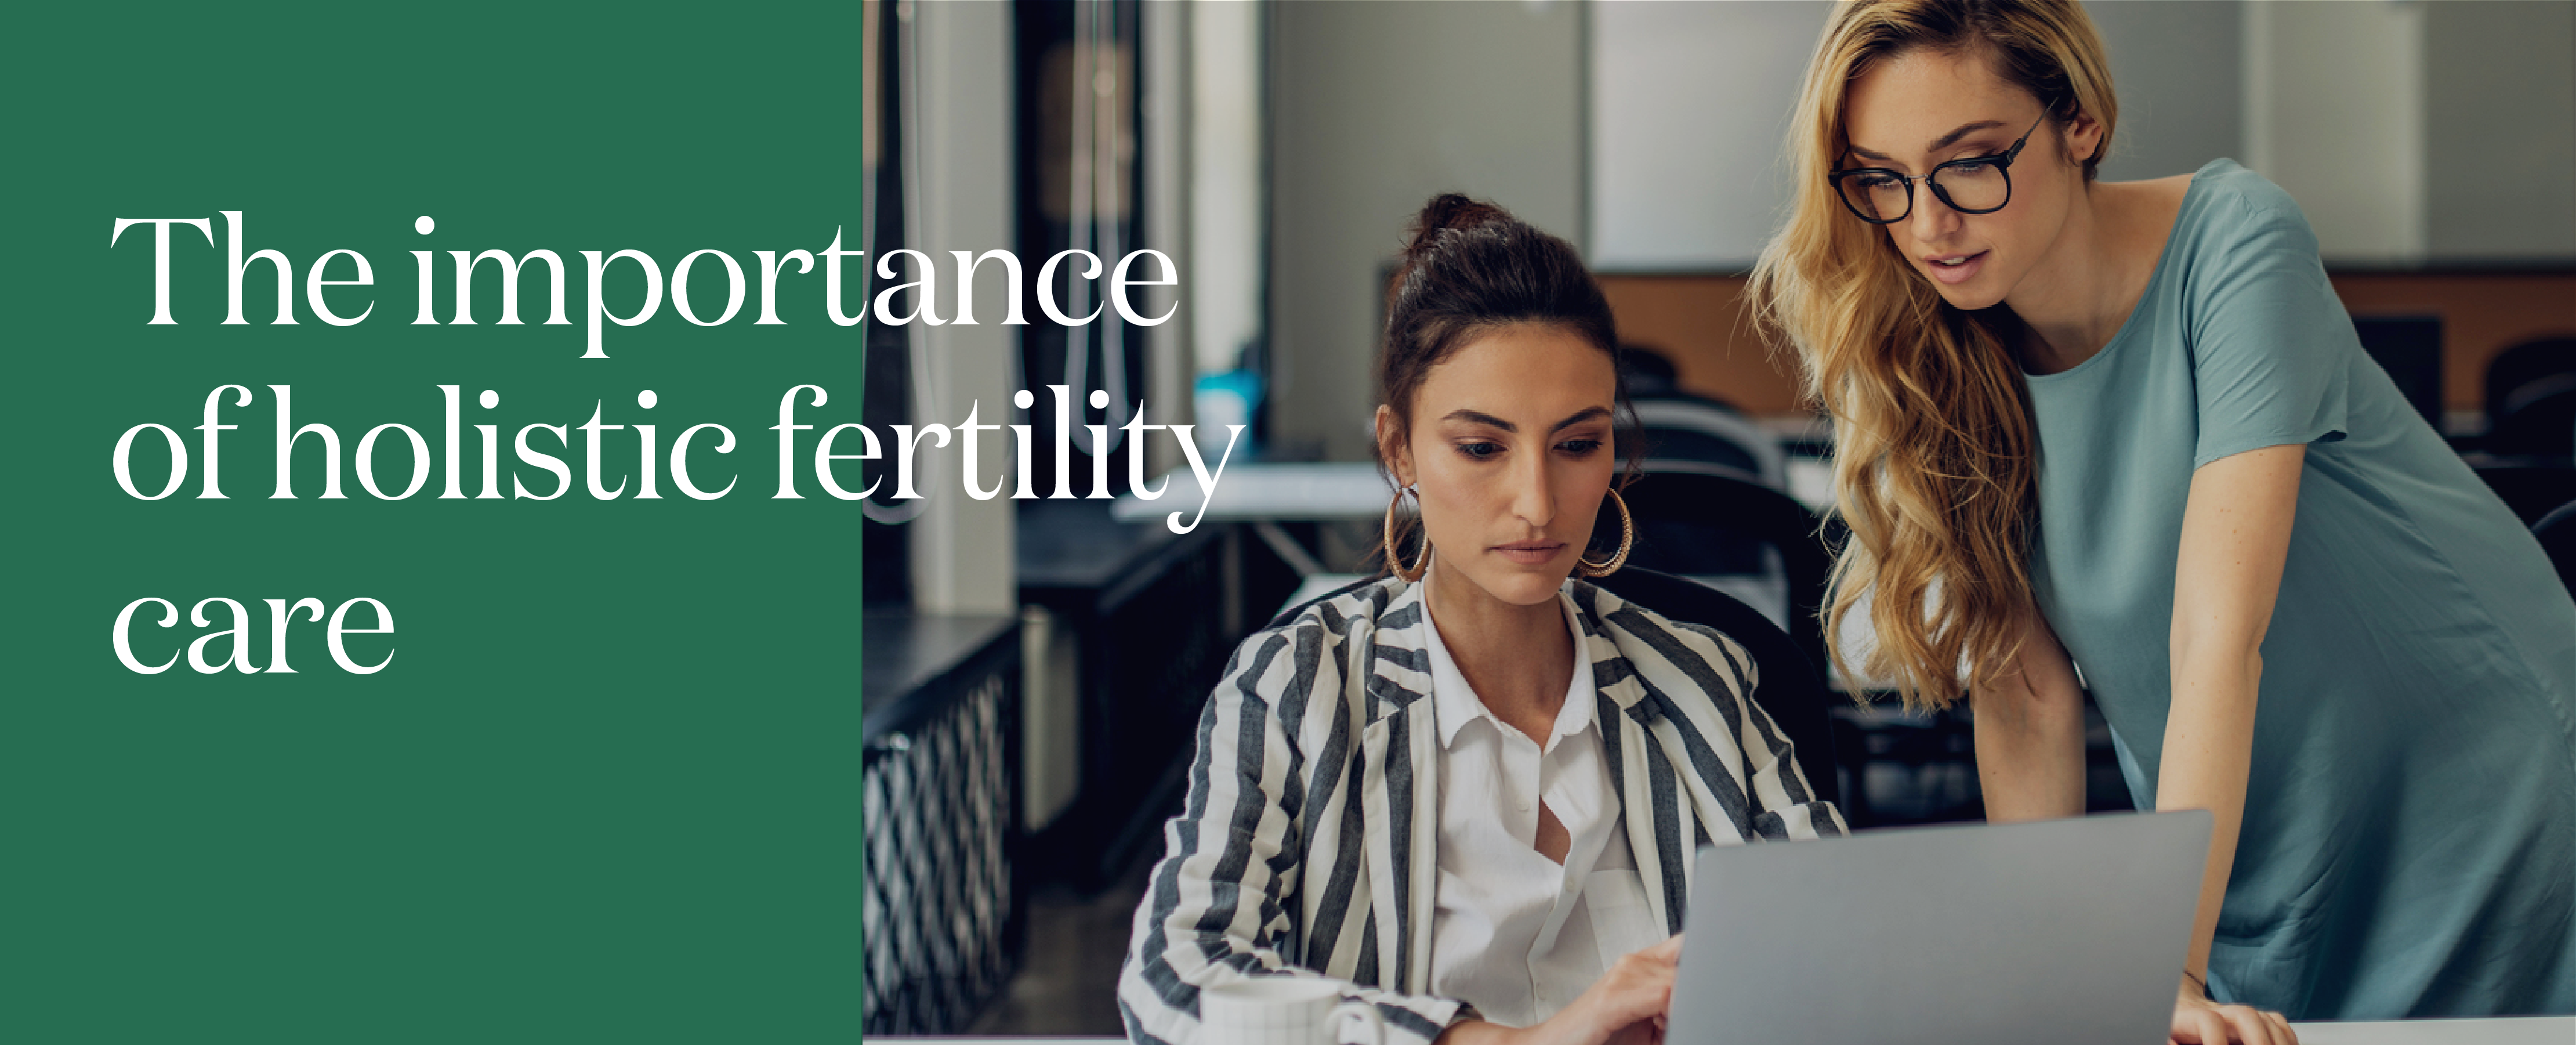 The importance of holistic fertility care